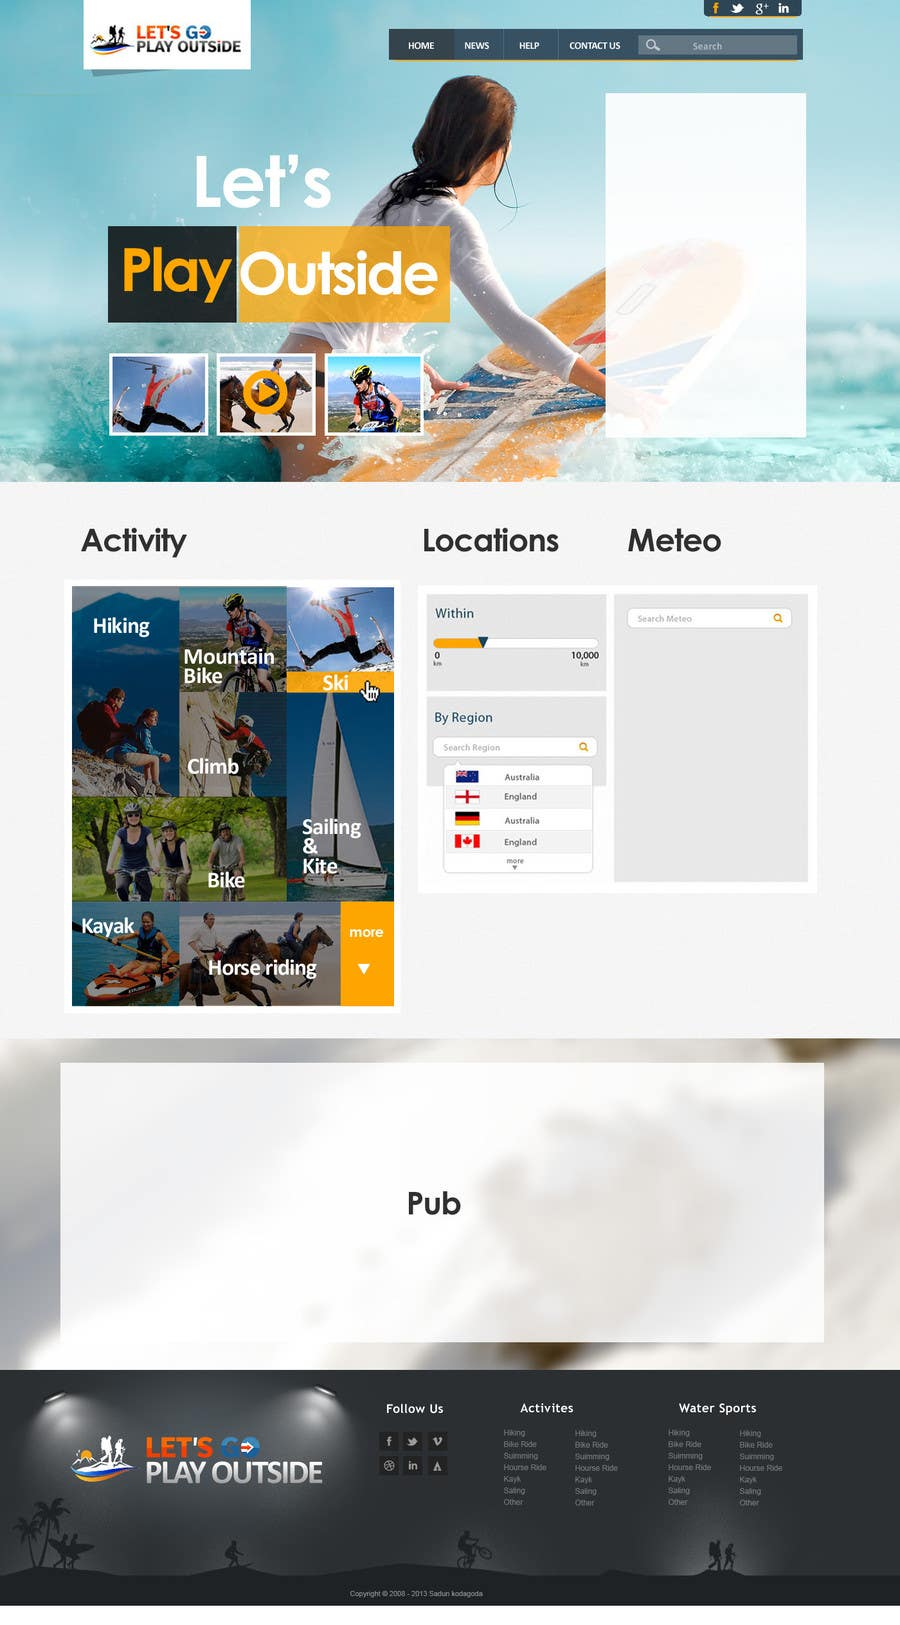 Bài tham dự cuộc thi #                                        12                                      cho                                         Website Design for Let's Go Play Outside